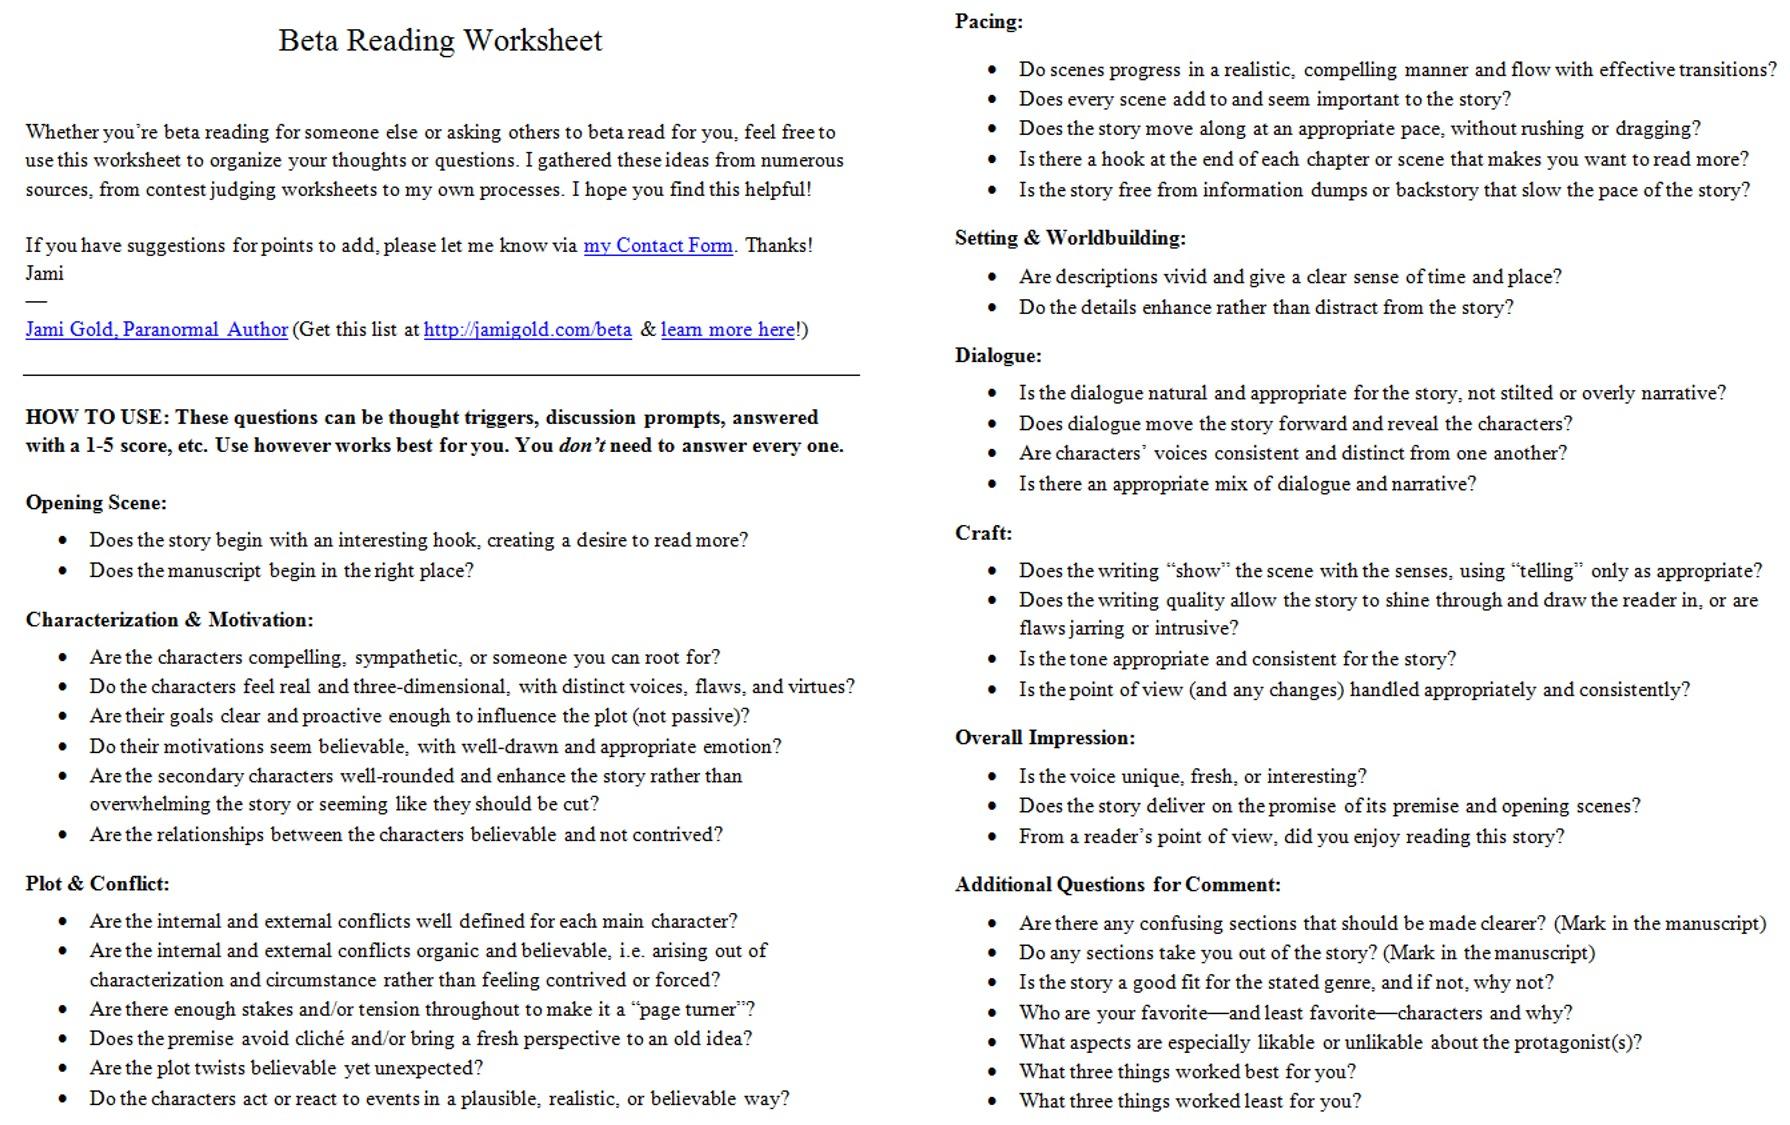 Aldiablosus  Sweet Worksheets For Writers  Jami Gold Paranormal Author With Exquisite Screen Shot Of The Twopage Beta Reading Worksheet With Cool Rational Expression Worksheet Also Spelling Word Worksheets In Addition Contractions Worksheet Nd Grade And Eftps Payment Worksheet As Well As Nervous System Worksheets Additionally  Column Worksheet From Jamigoldcom With Aldiablosus  Exquisite Worksheets For Writers  Jami Gold Paranormal Author With Cool Screen Shot Of The Twopage Beta Reading Worksheet And Sweet Rational Expression Worksheet Also Spelling Word Worksheets In Addition Contractions Worksheet Nd Grade From Jamigoldcom